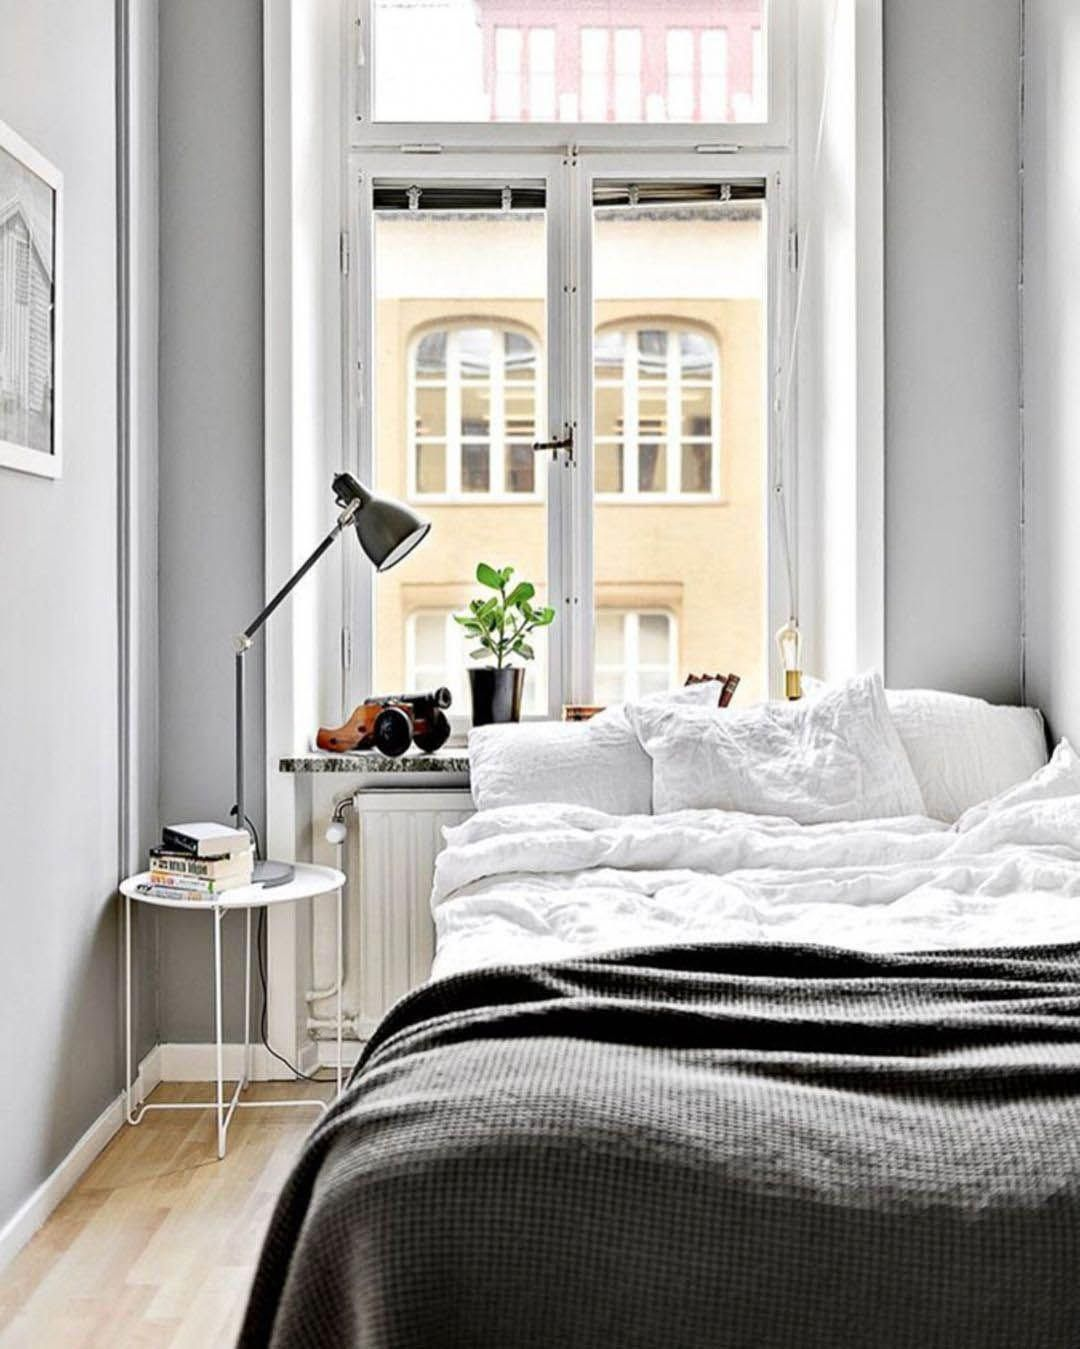 Get These Top Trending Minimalist Bedroom Mens Only On This Page Apartmentdecor Get These Top Trending Minimalist Bed Schlafzimmer Design Wohnen Wohnung